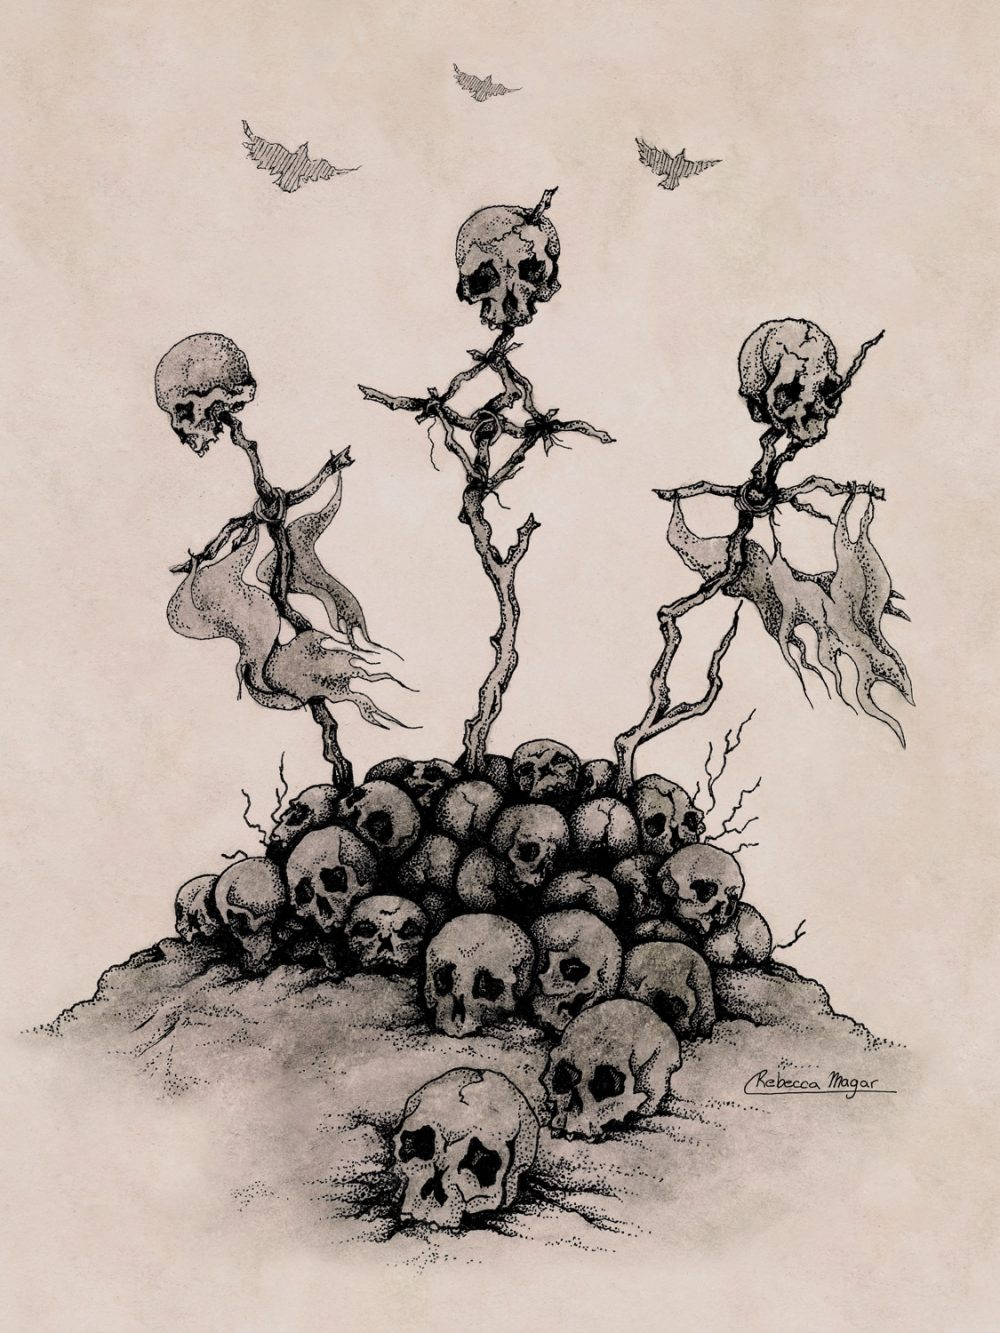 Drawing of skulls on crosses by Rebecca Magar